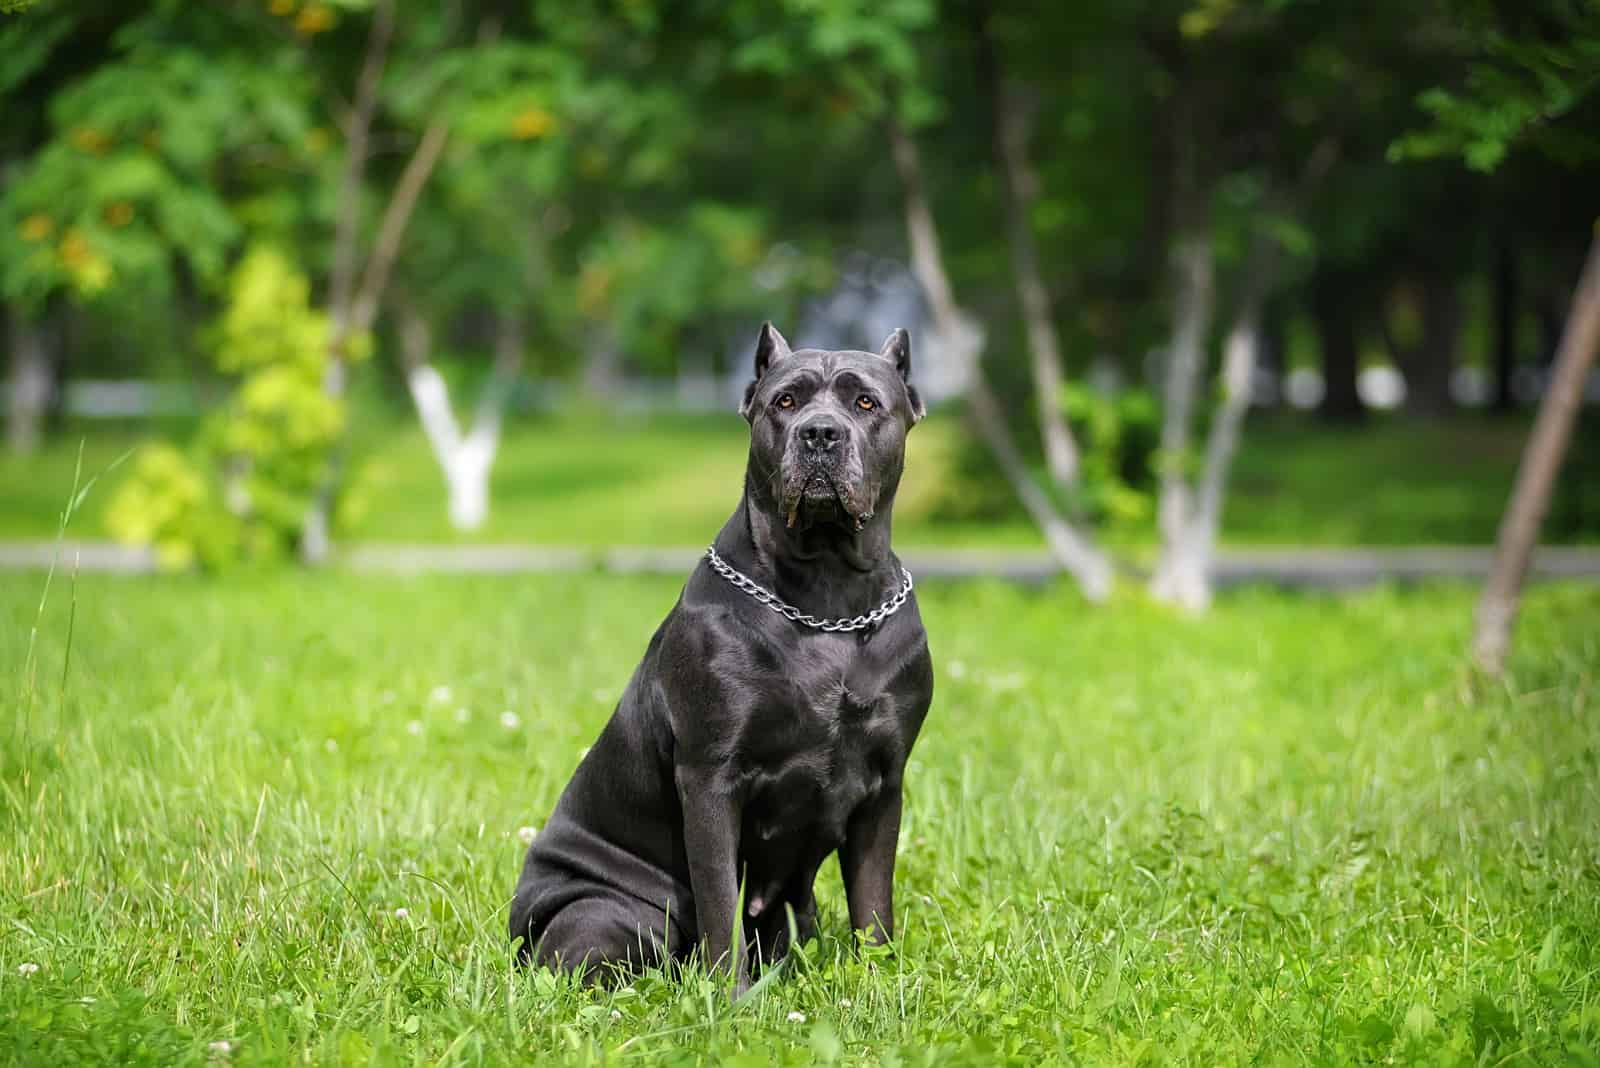 Italian cane Corso in the Park on the green lawn